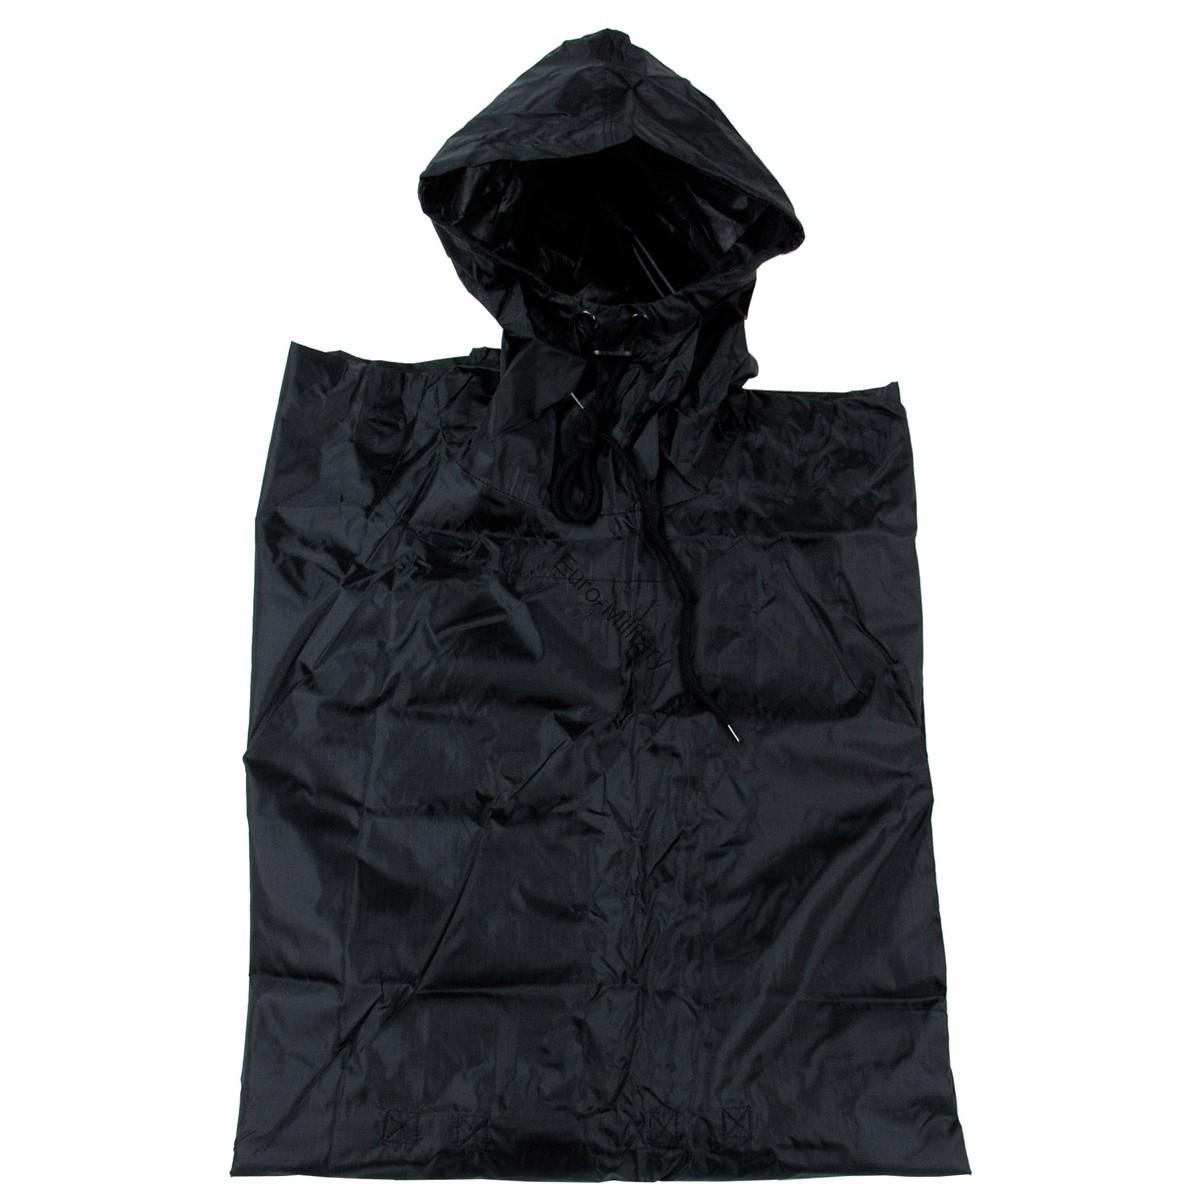 S Army Waterproof RipStop Hooded Rain Military Poncho - Black